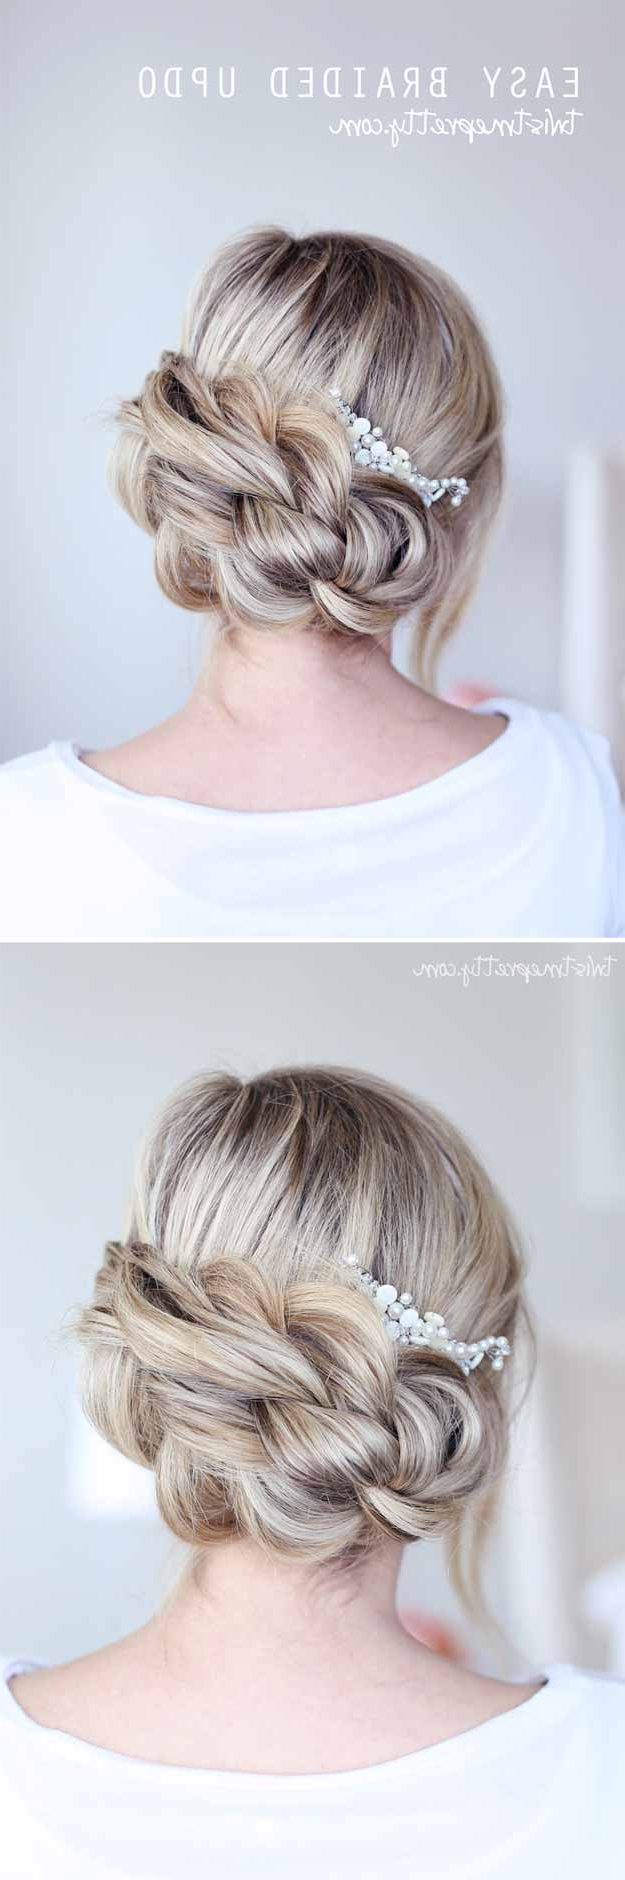 Latest Simple And Cute Wedding Hairstyles For Long Hair Throughout 31 Wedding Hairstyles For Long Hair – The Goddess (Gallery 13 of 20)